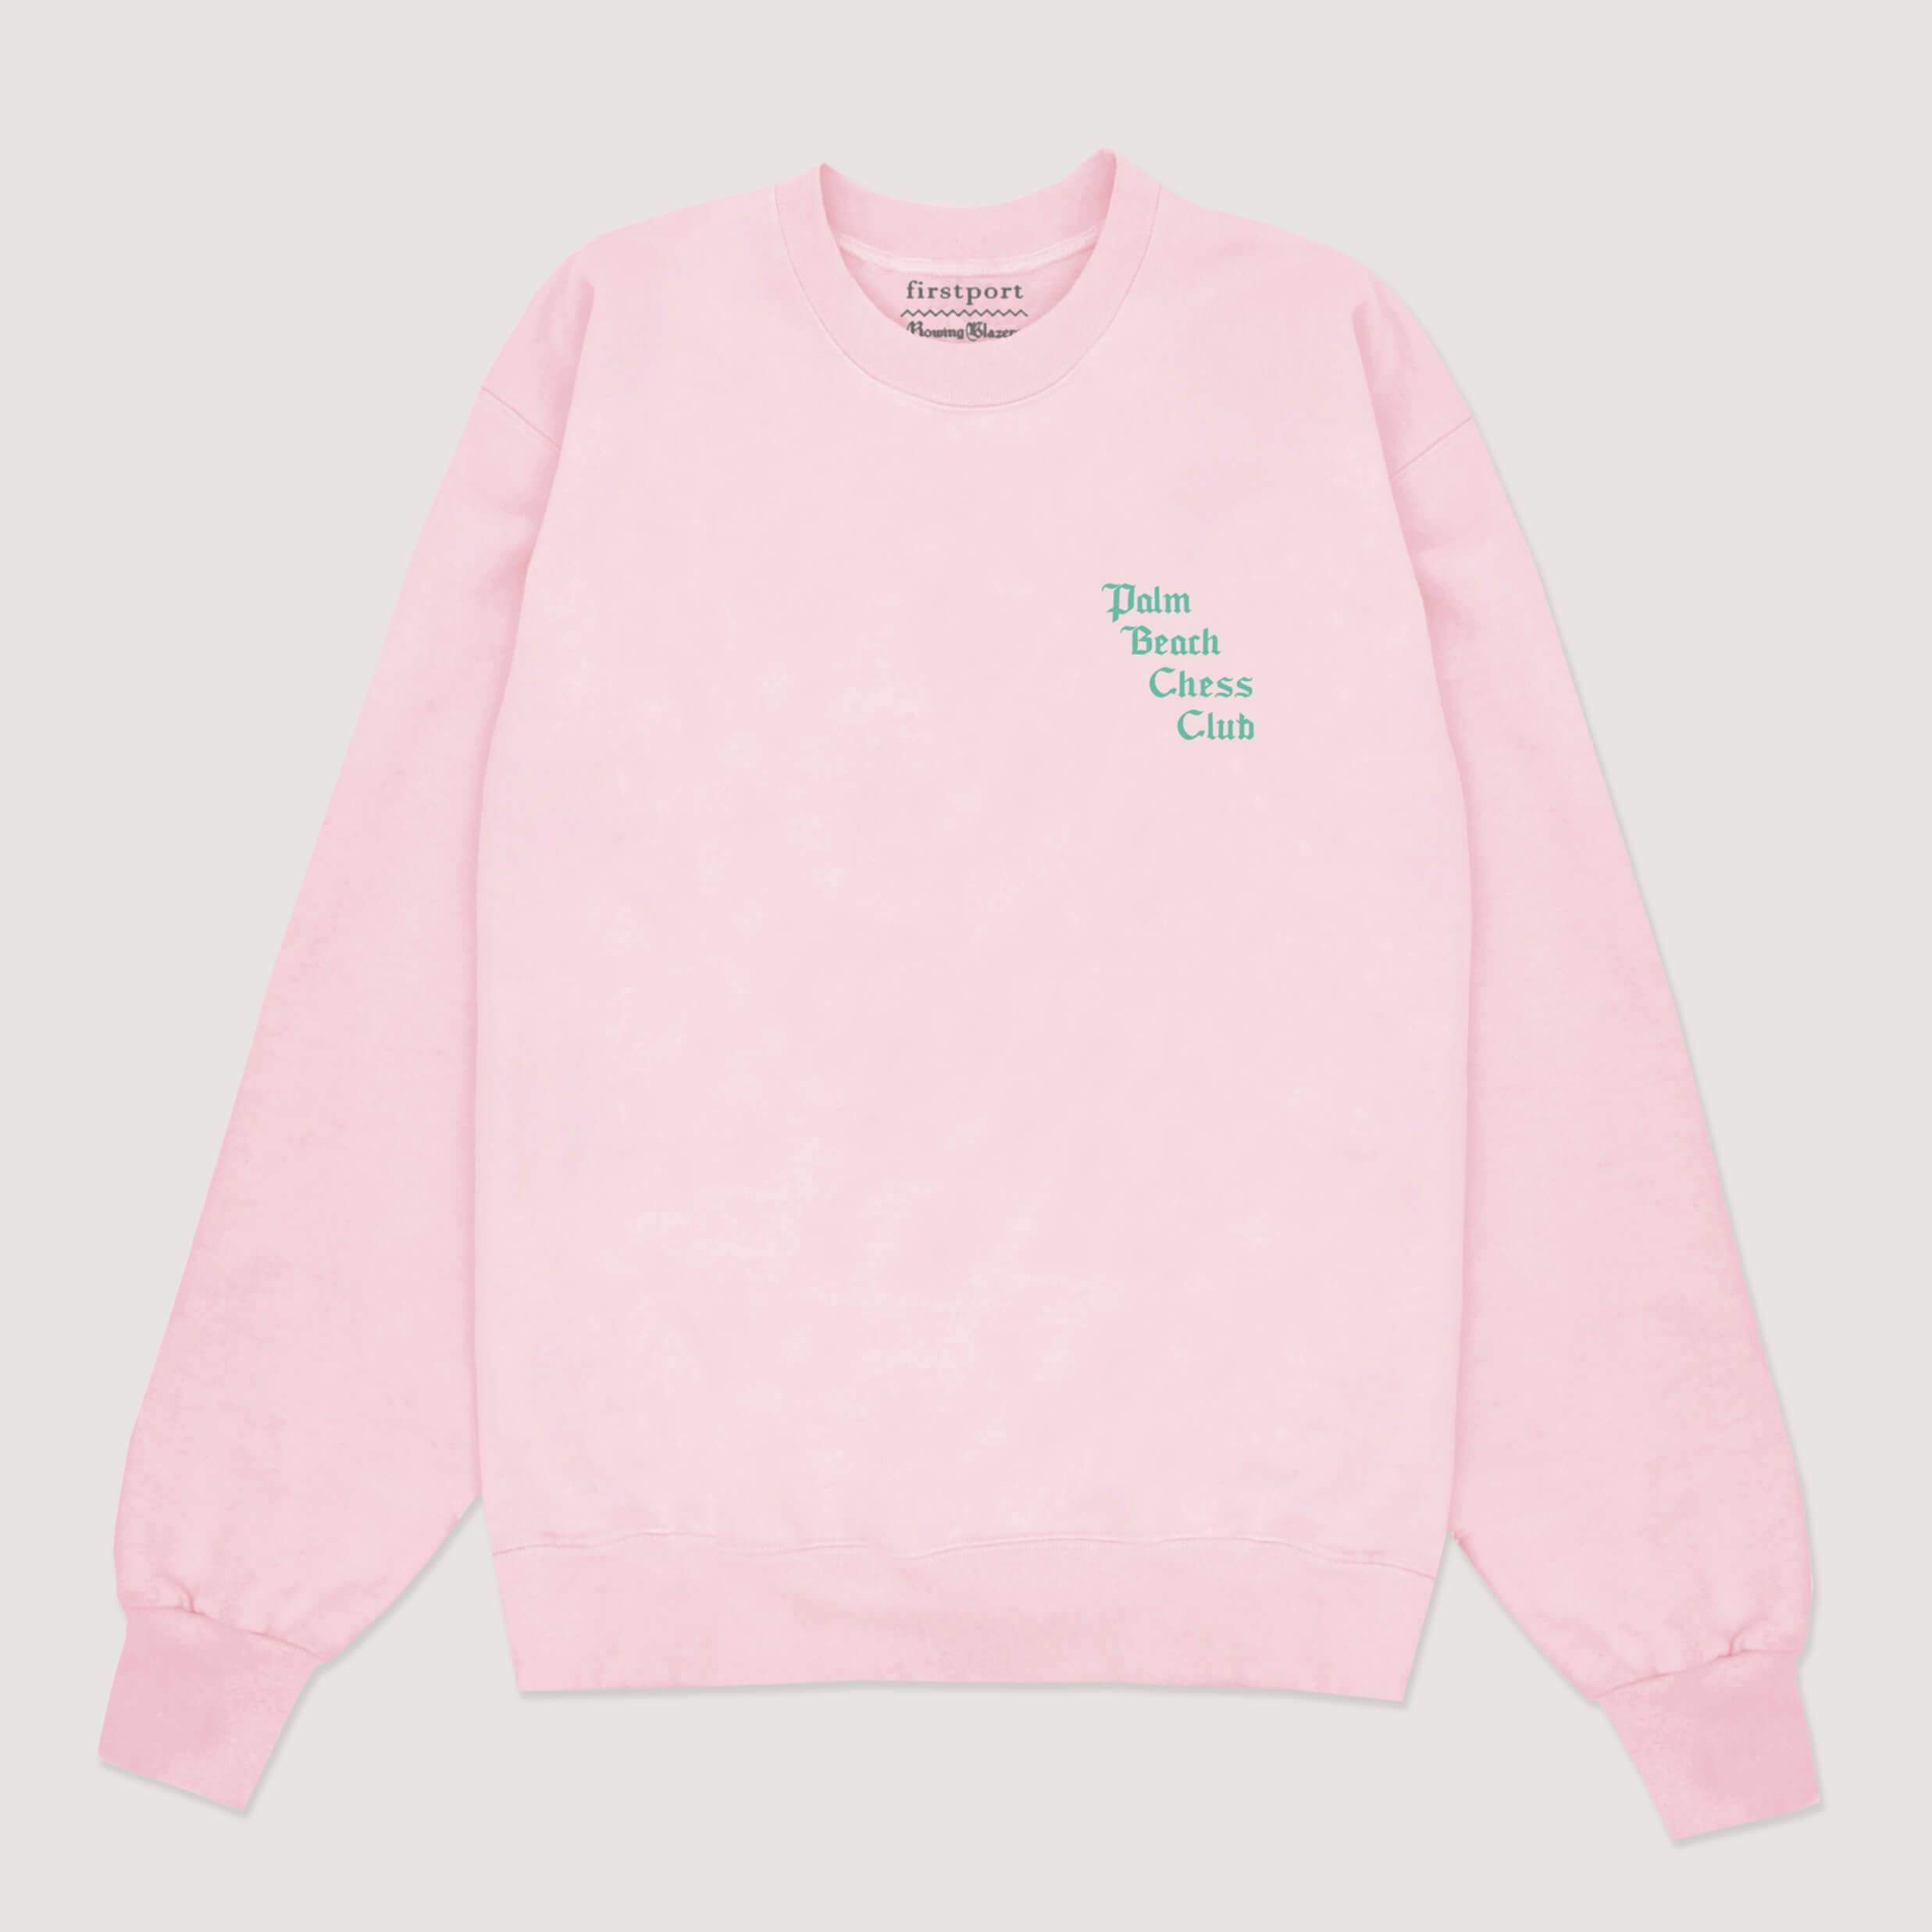 Notes Durable Firstport Crewneck Sweatshirt This Item Ships Directly From Our Brand Partner Please Allow Ad In 2021 Crew Neck Sweatshirt Garment Dye Club Sweatshirts [ 2474 x 2474 Pixel ]